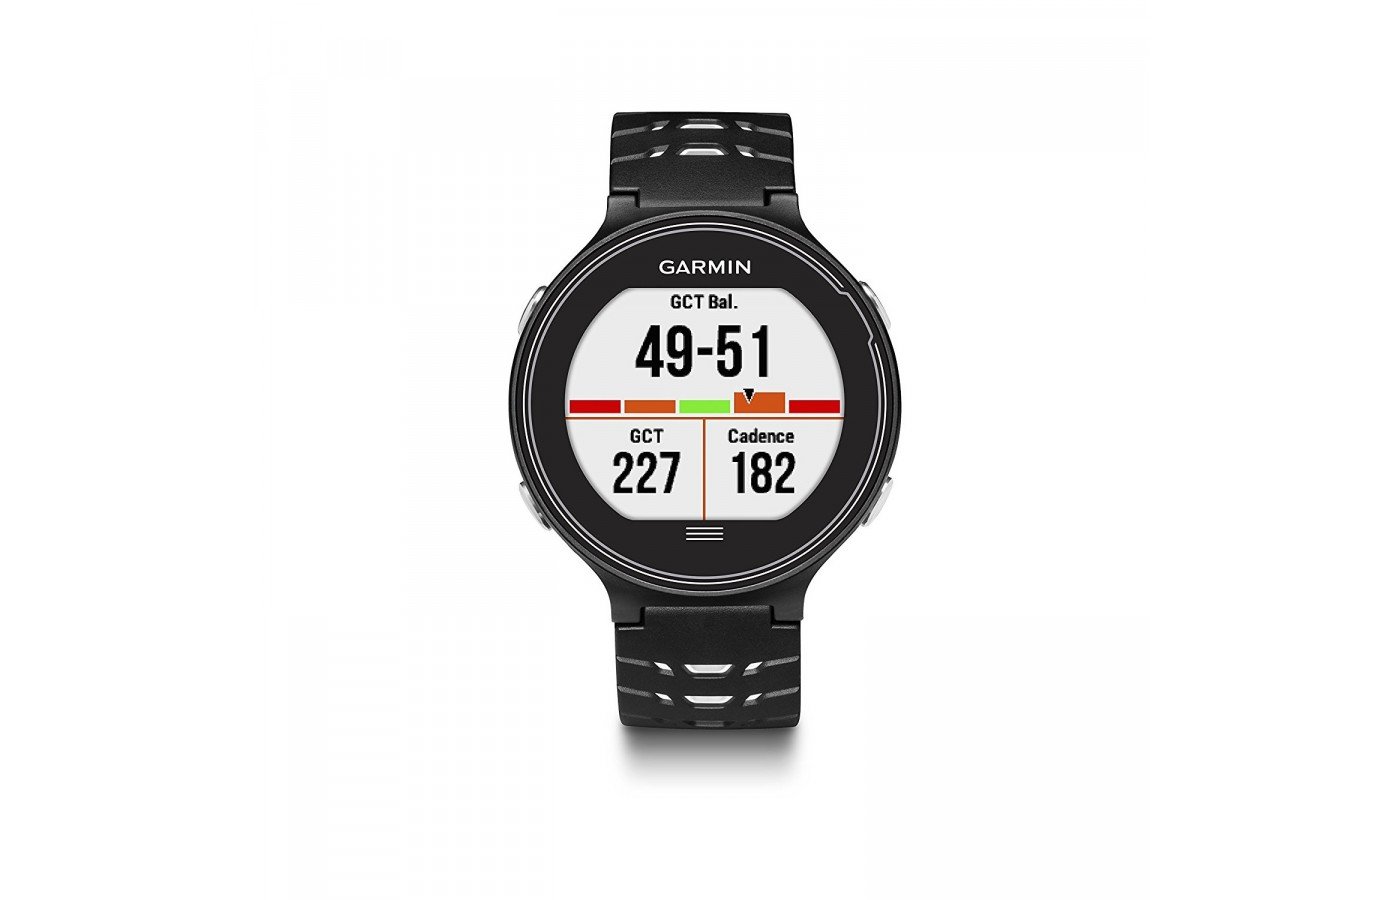 The Garmin Forerunner 630 offers a high resolution color display for easier access to information.